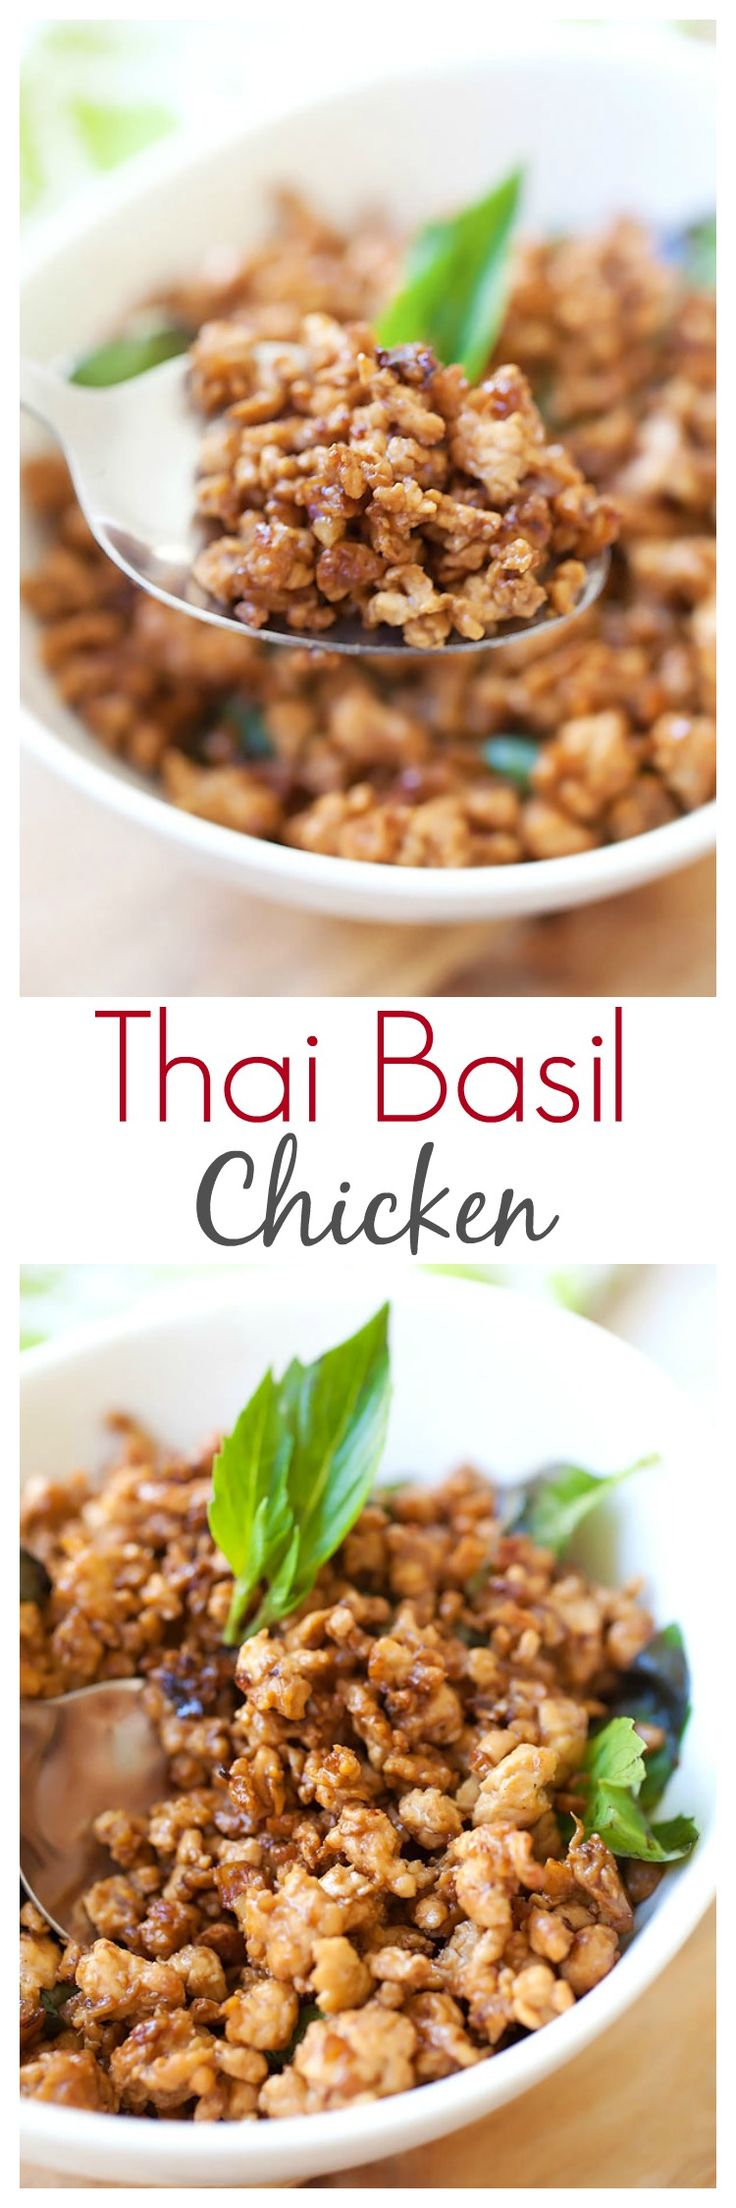 Thai Basil Chicken – made with ground chicken, basil leaves, and ...